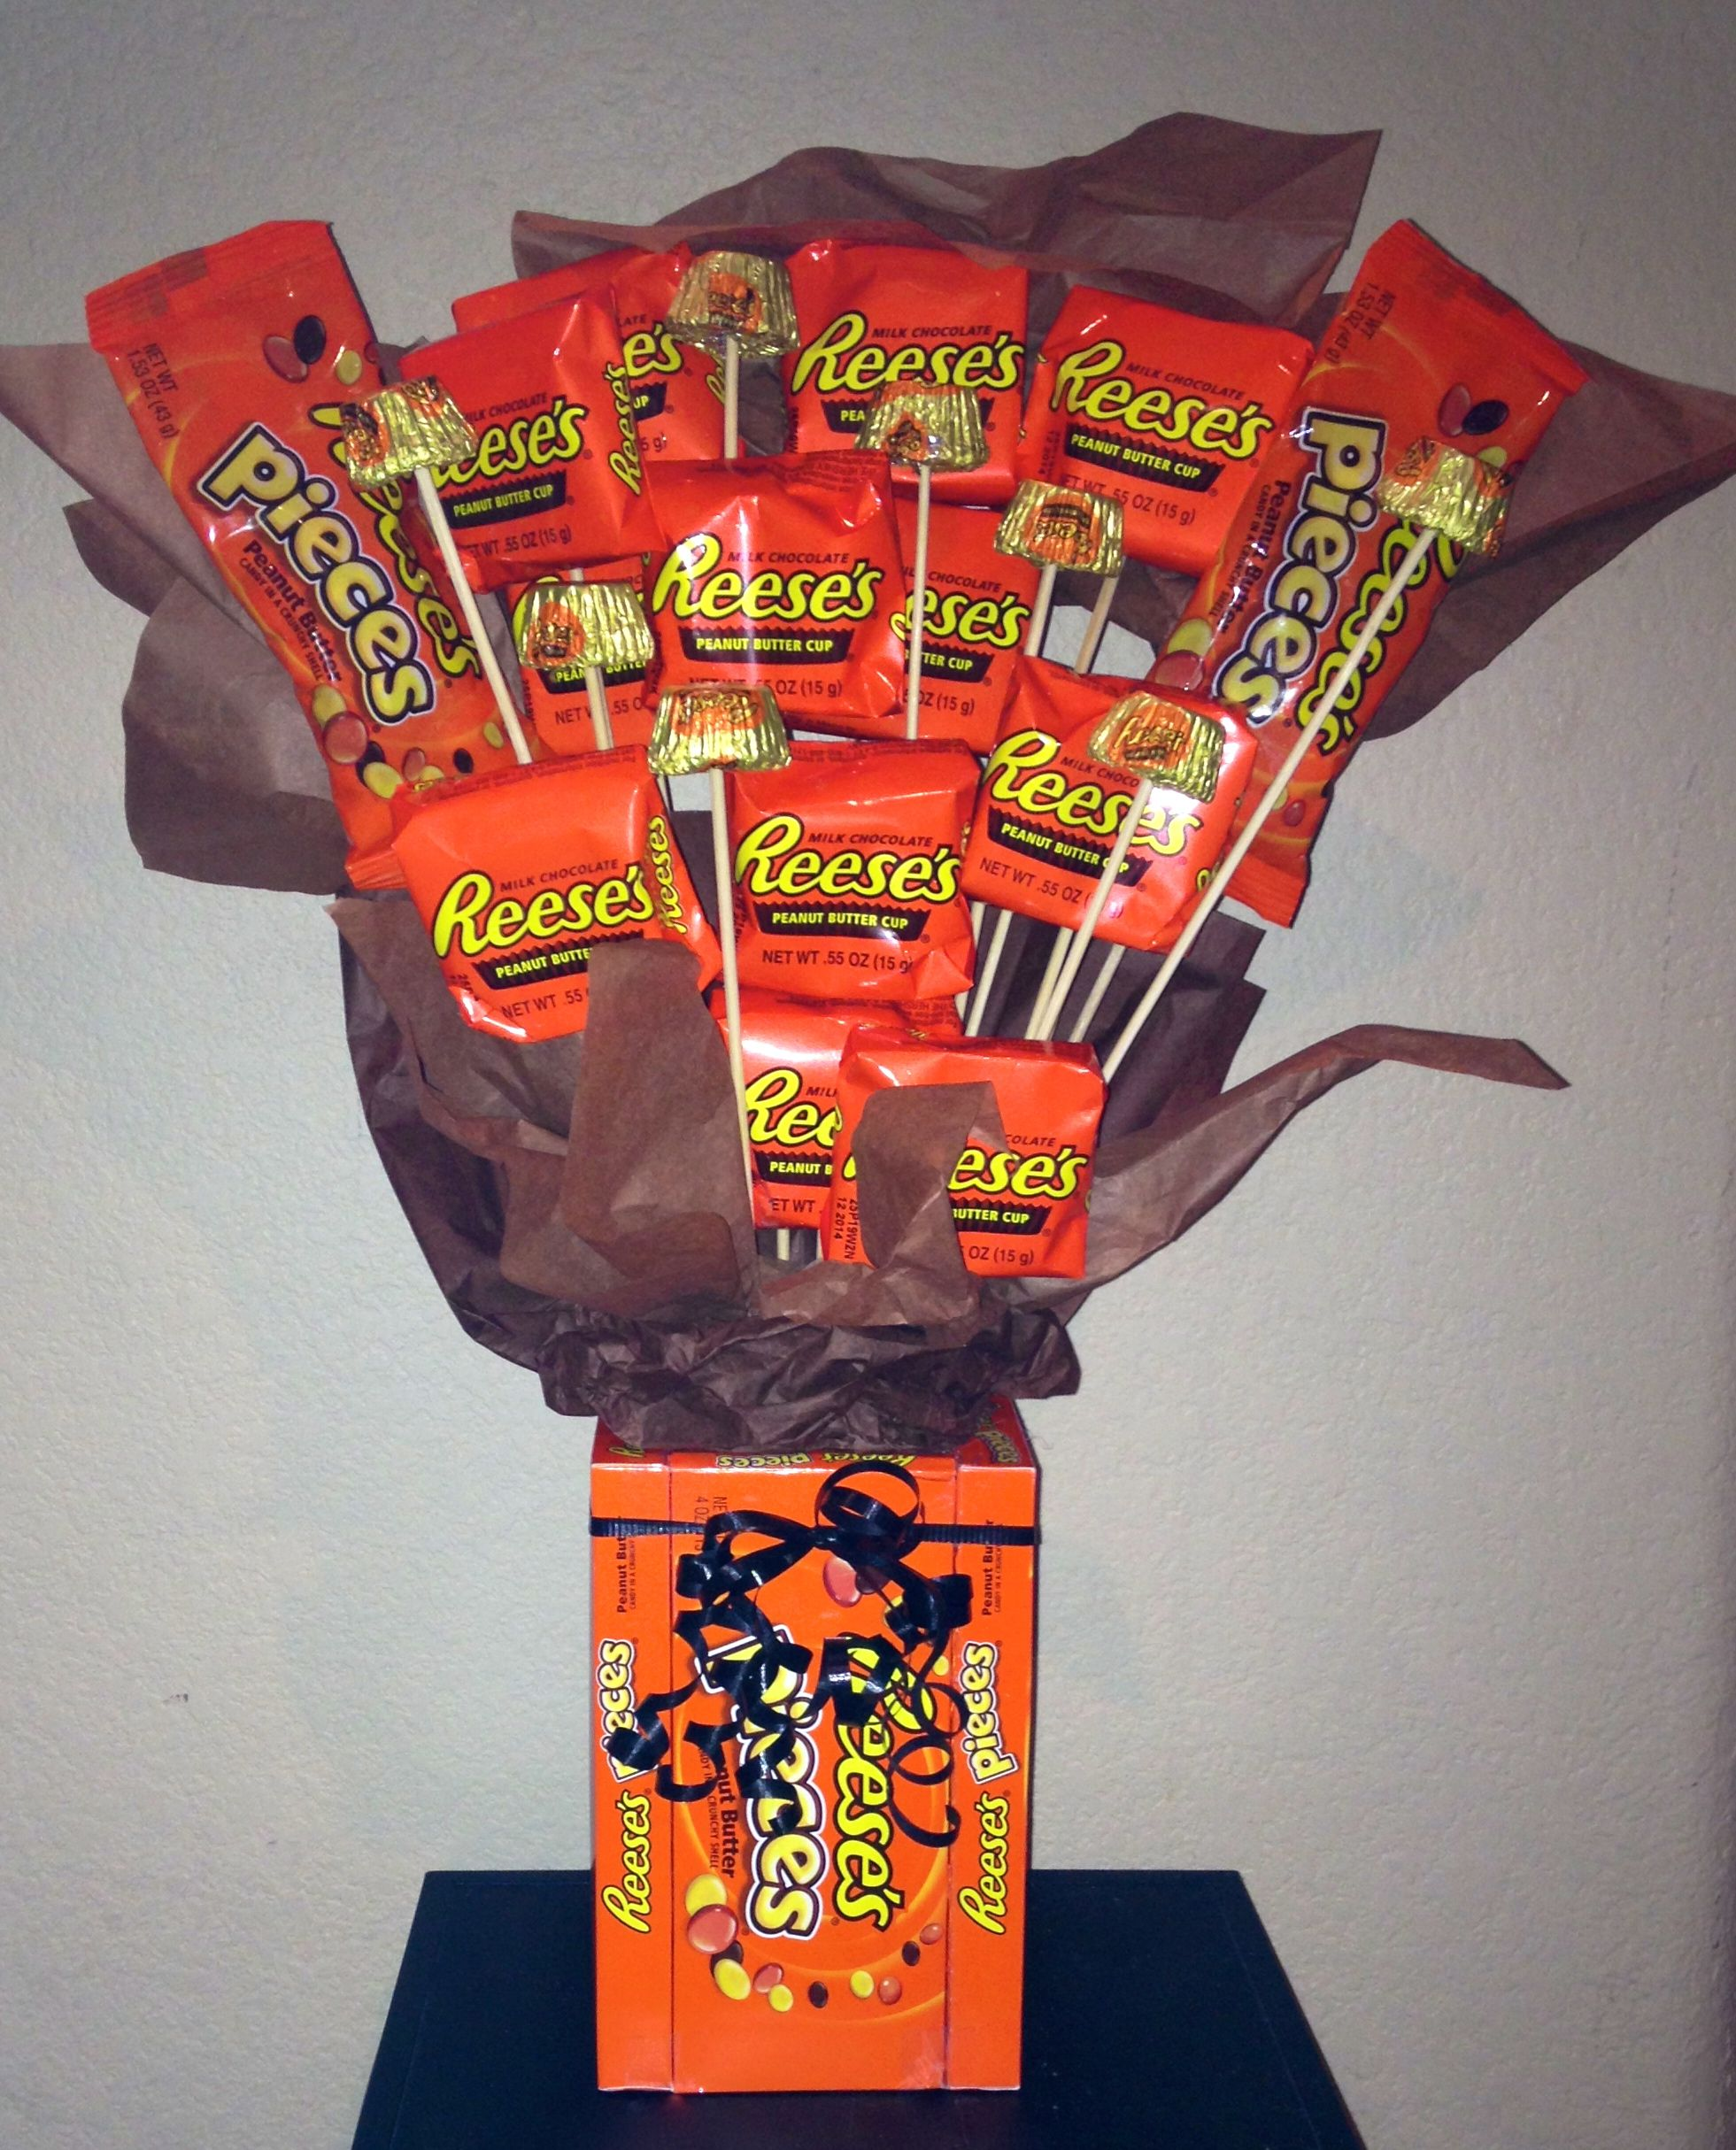 Reese S Peanut Butter Cup Fans Fun Candy Bouquet For Any Occasion Or Just Because Gifts